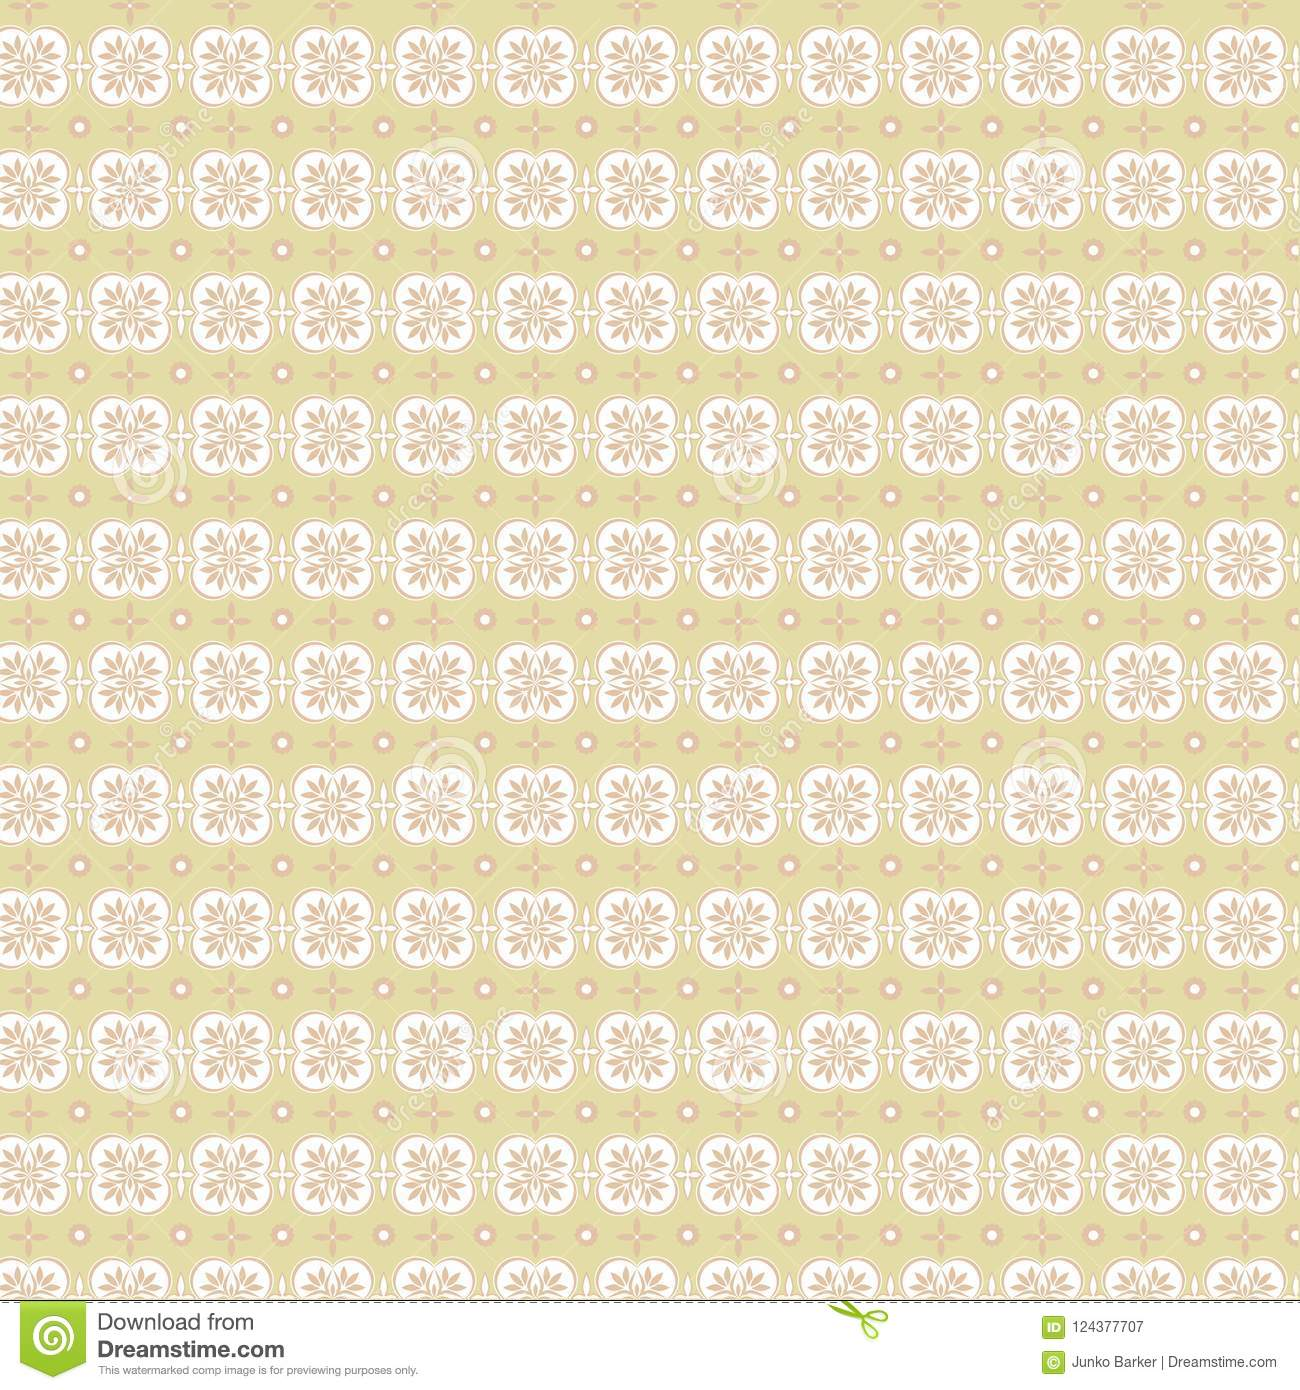 Brown Flower Repeat Pattern Antique Wallpaper Texture Stock